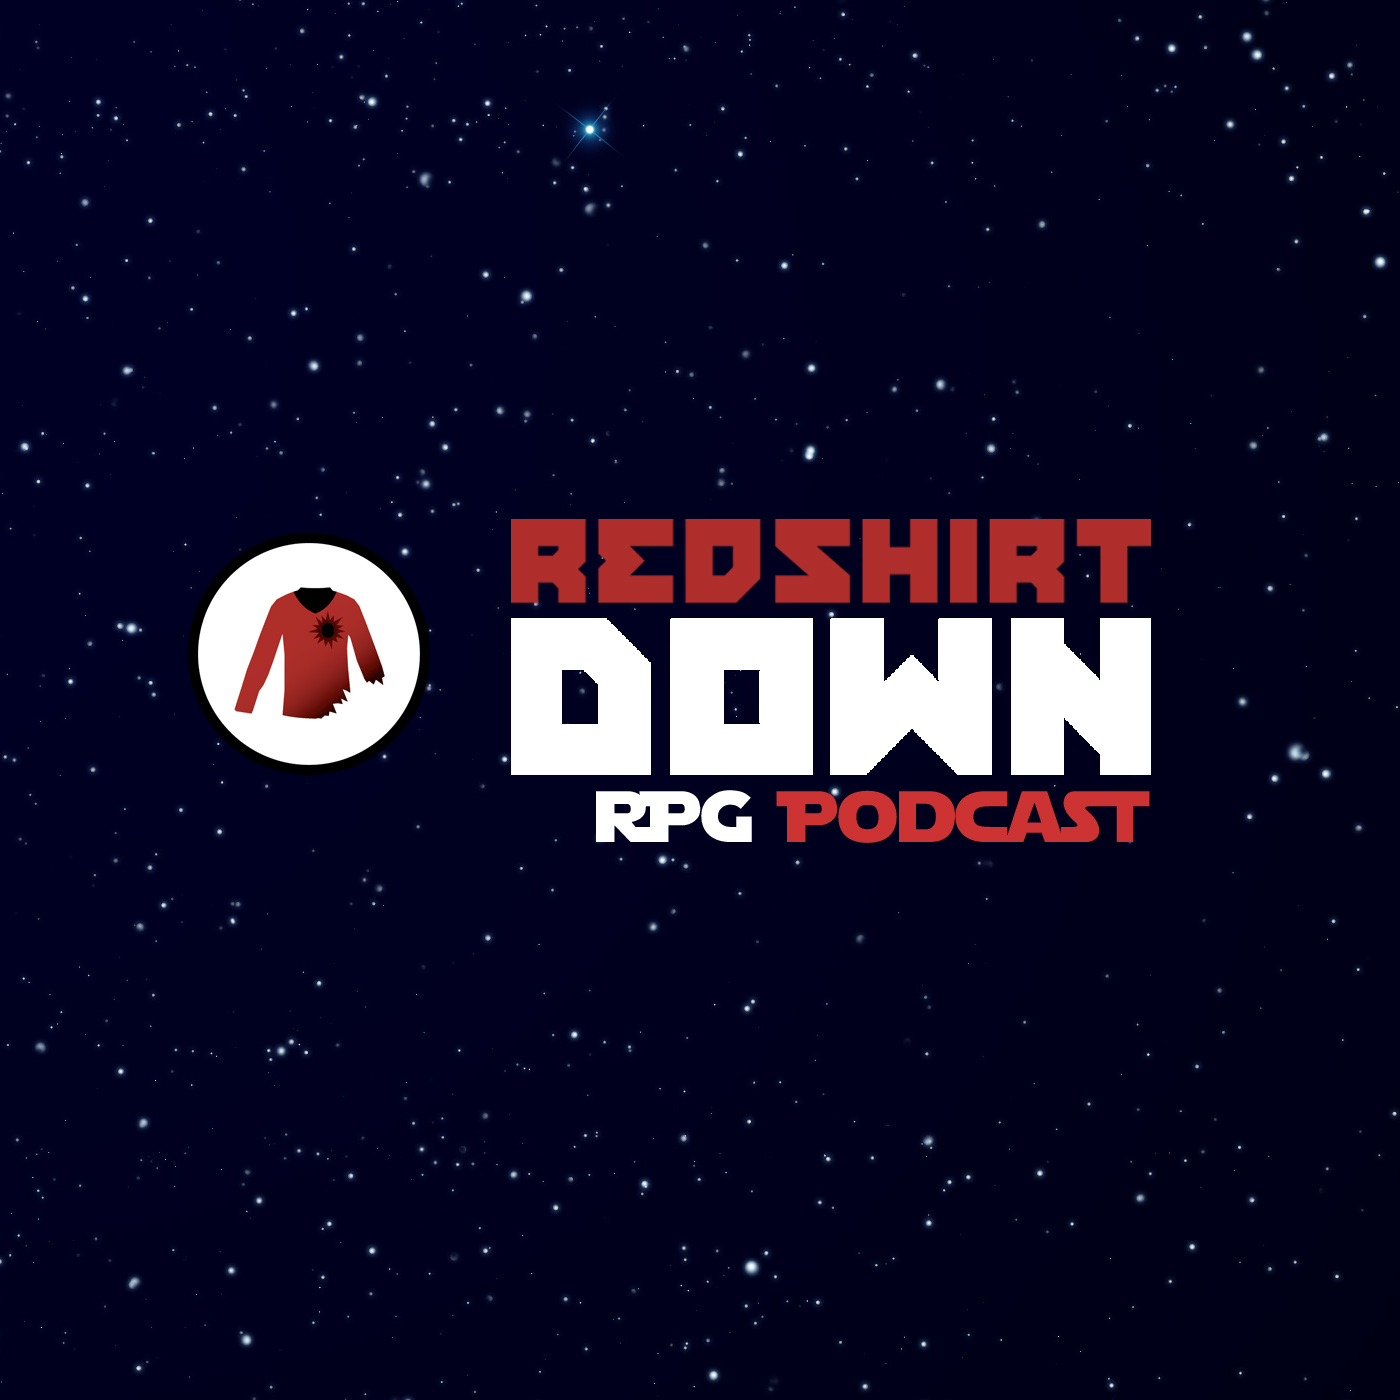 Red Shirt Down RPG Podcast